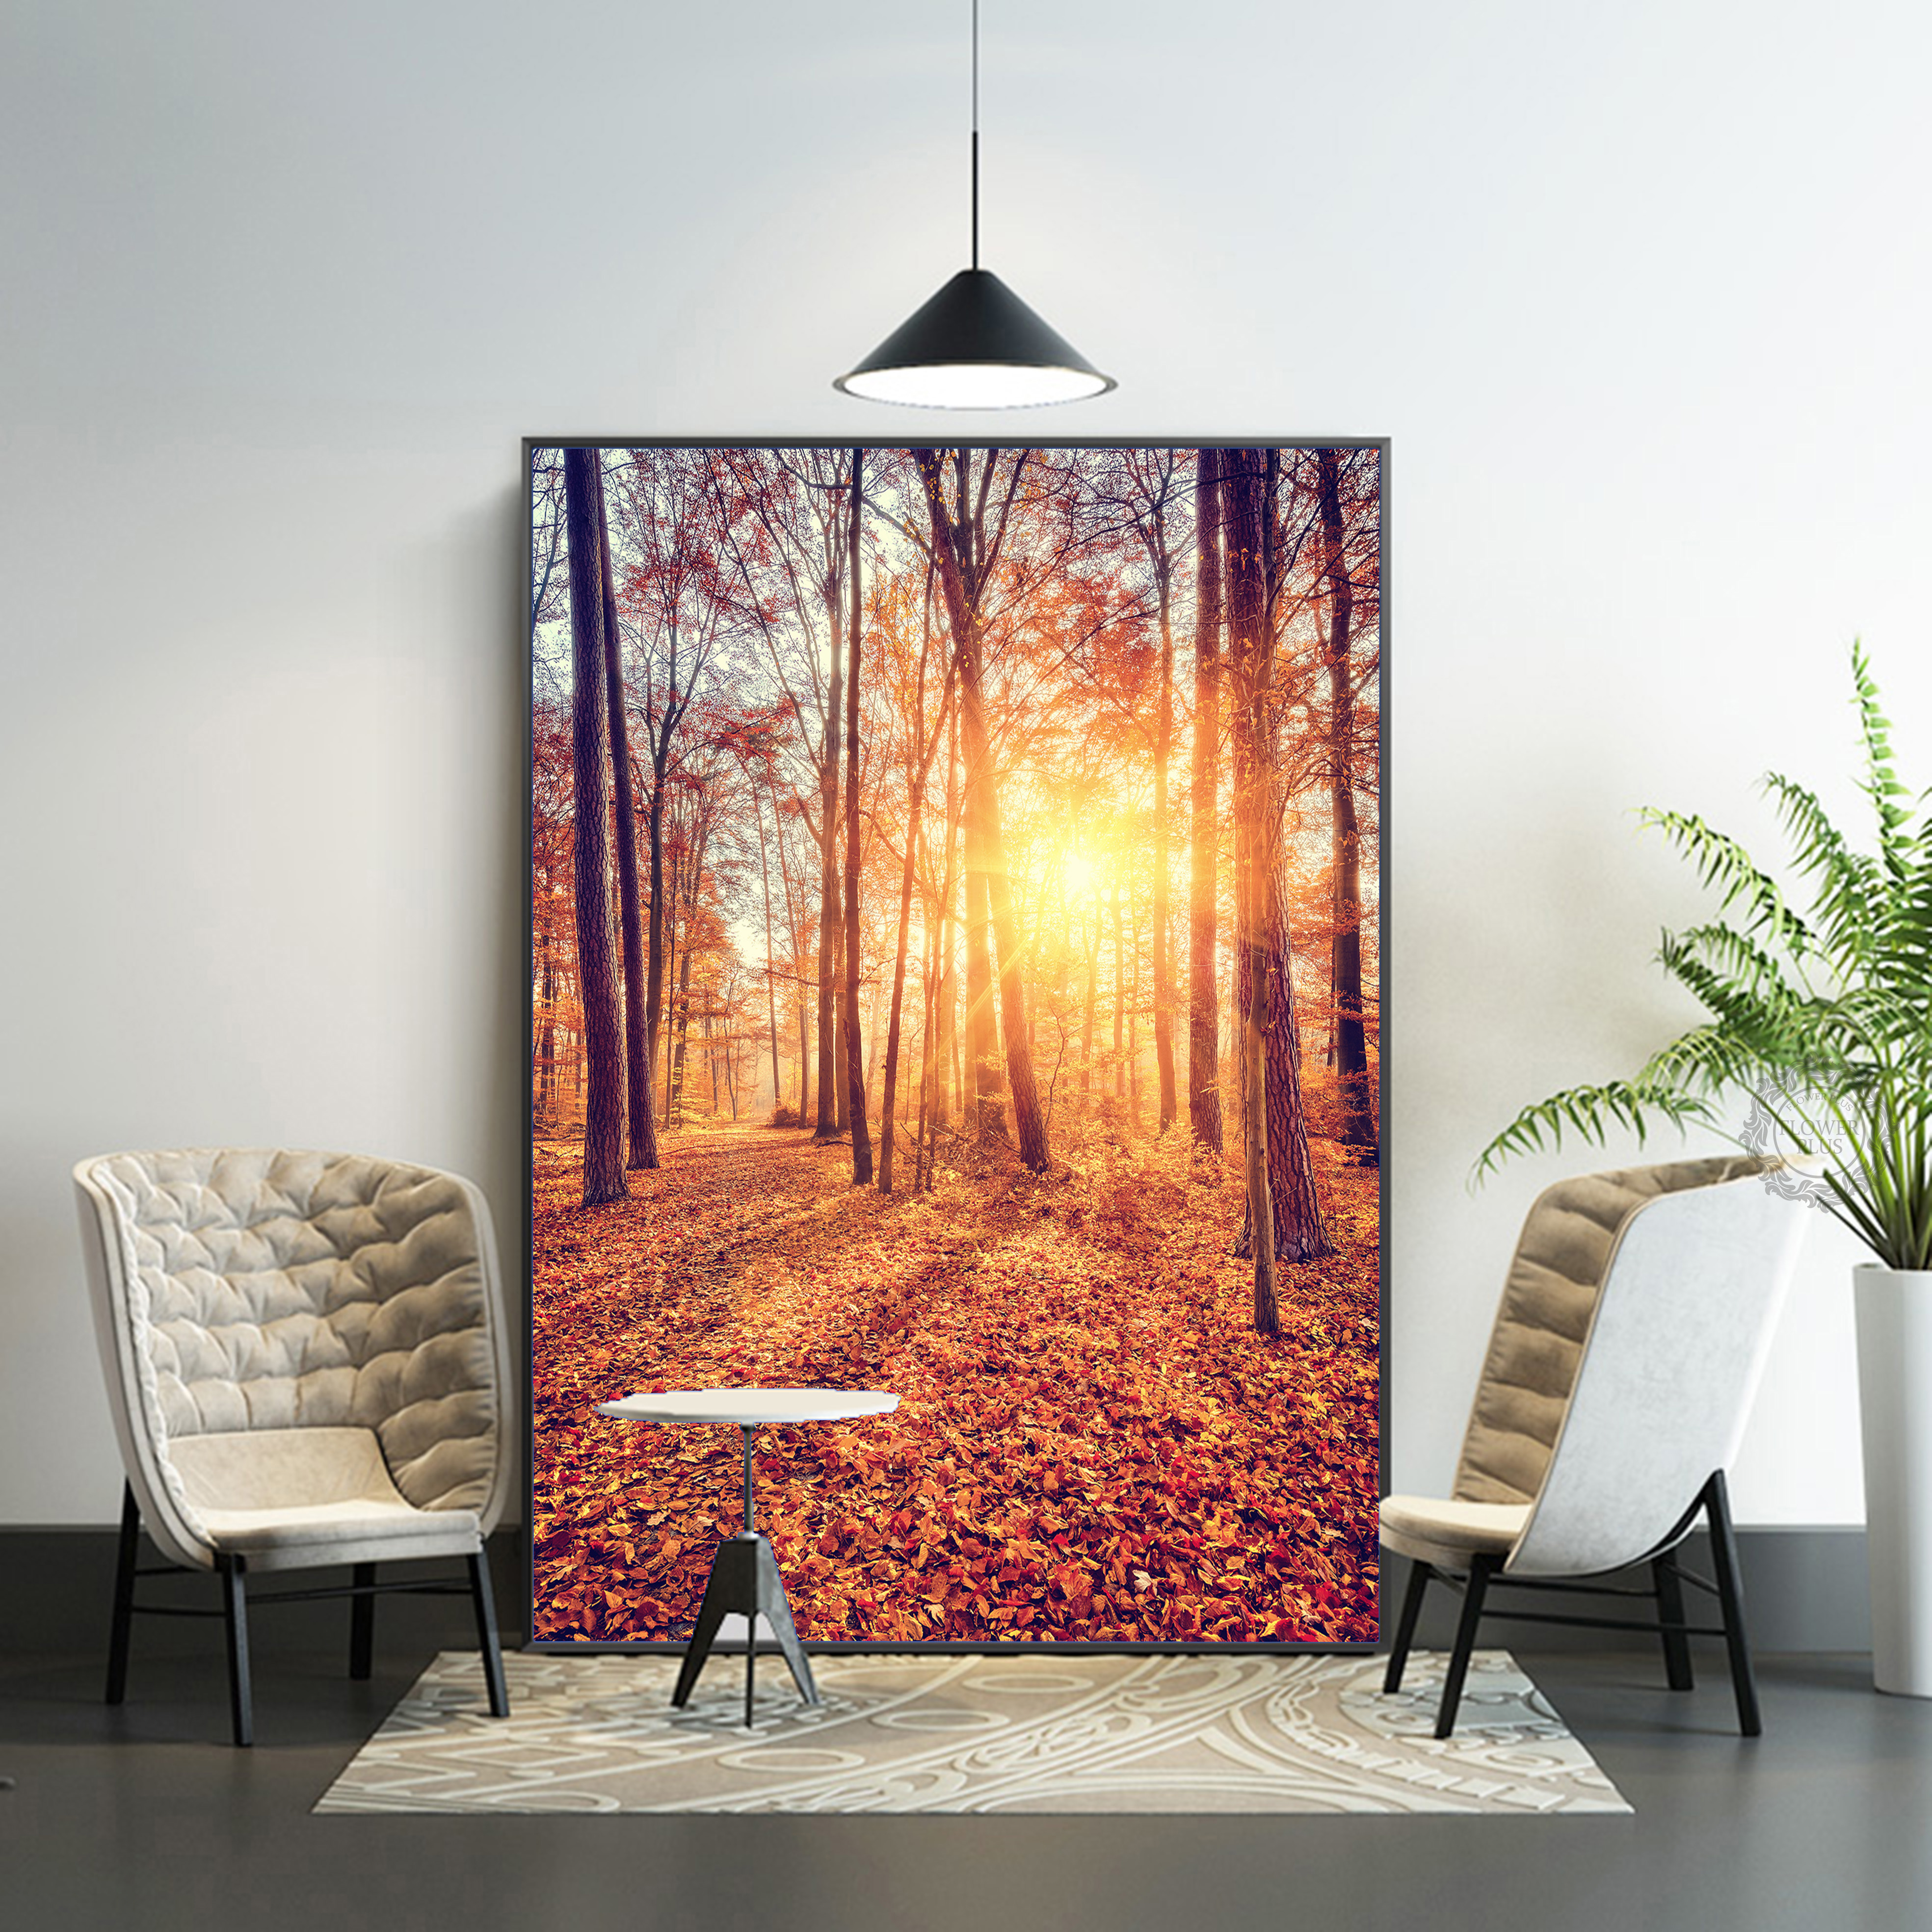 Posters Tableau Wall Art Home Decor Modern Beautiful Sunrise Natural Landscape HD Print Painting Pictures Decoration Canvas in Painting Calligraphy from Home Garden